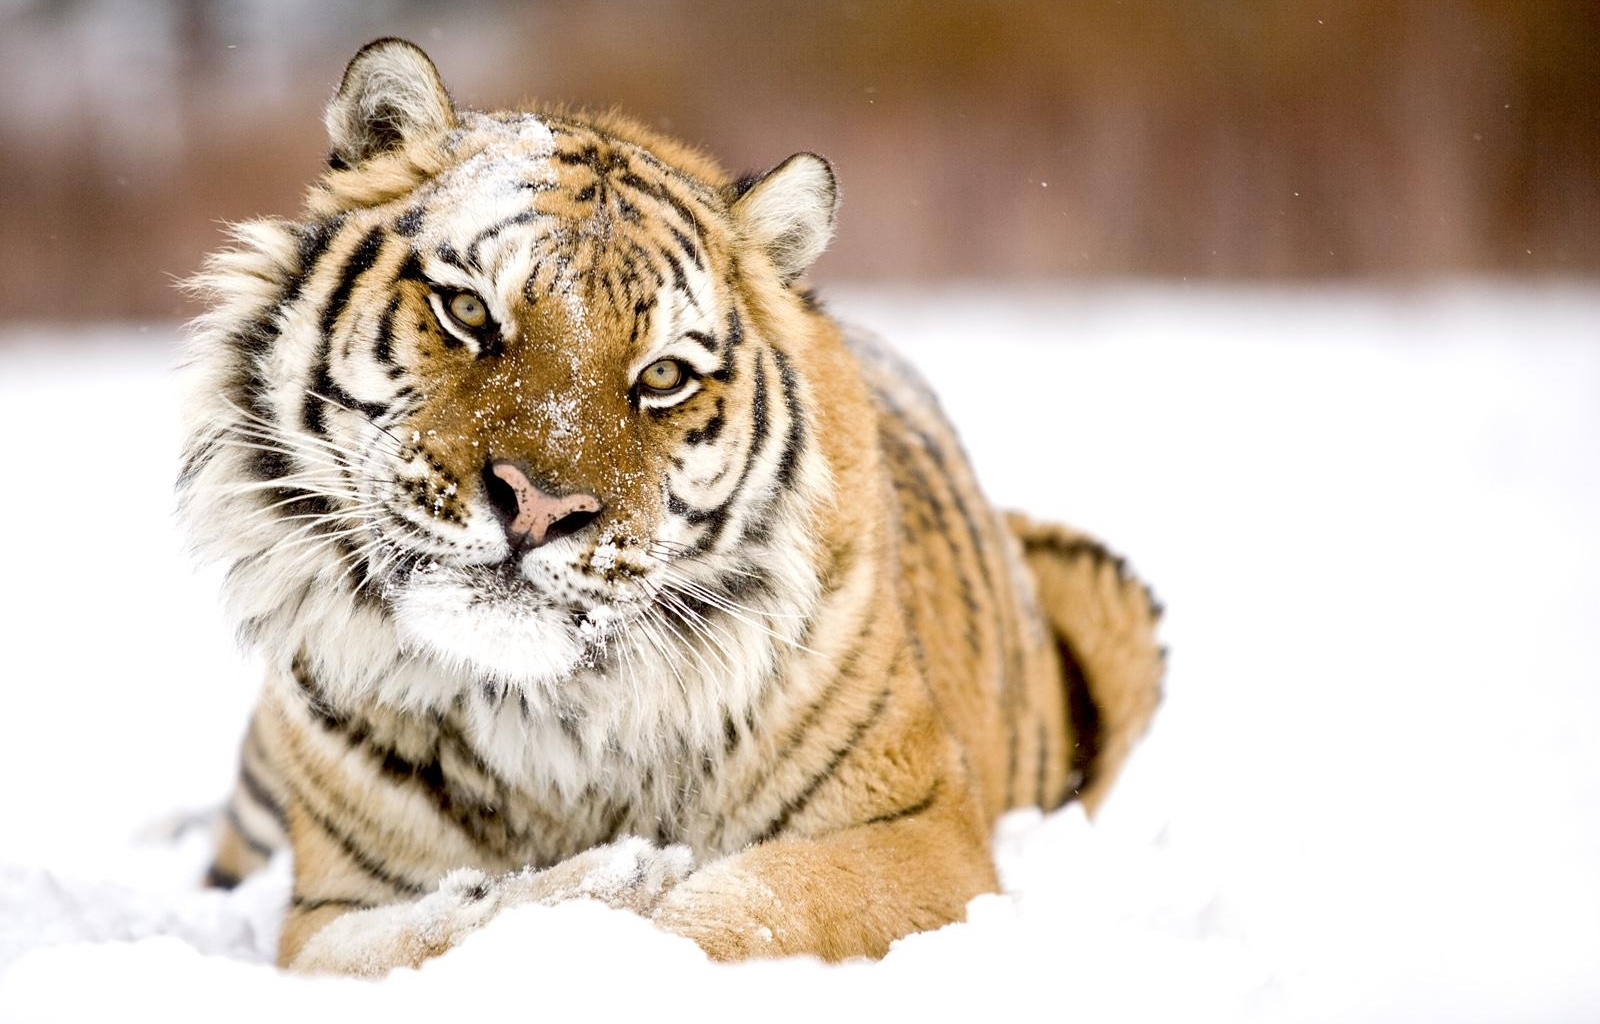 3471 download wallpaper Animals, Tigers screensavers and pictures for free